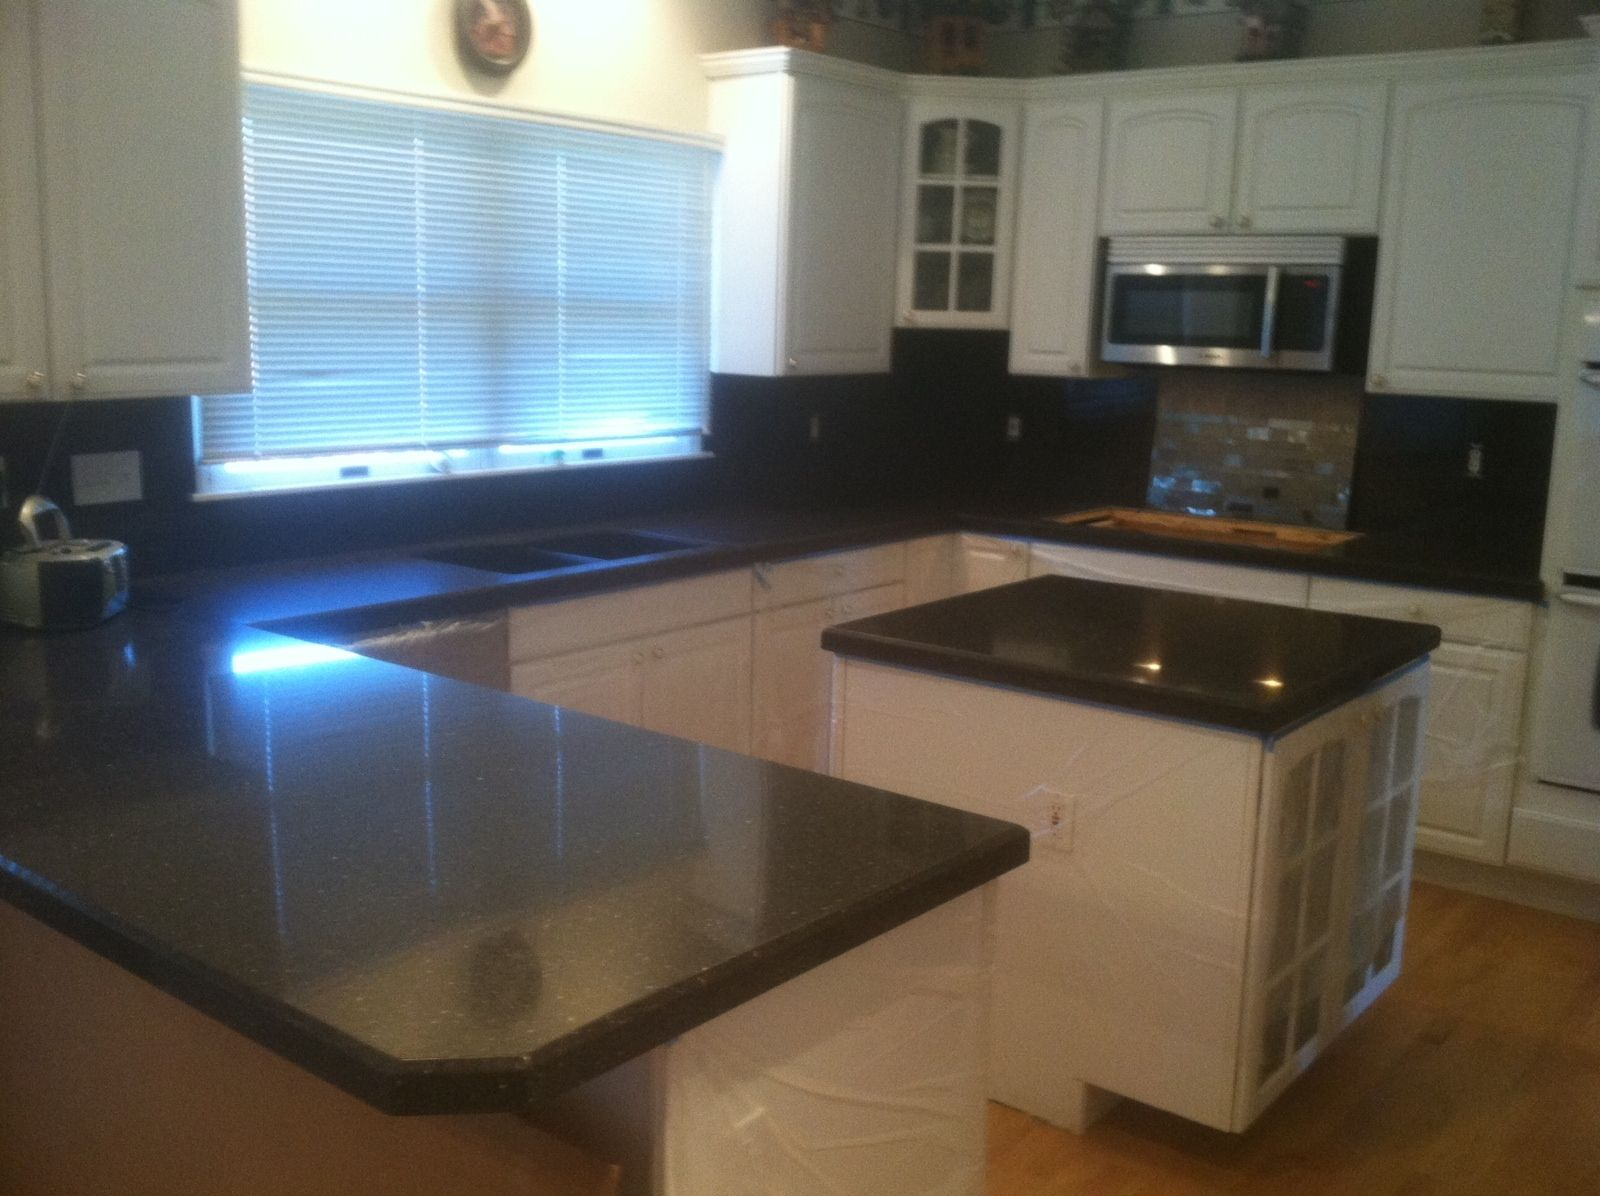 Kitchen Cabinets St Louis Amarone Granite Countertops And High Backsplash With A Hand Cut